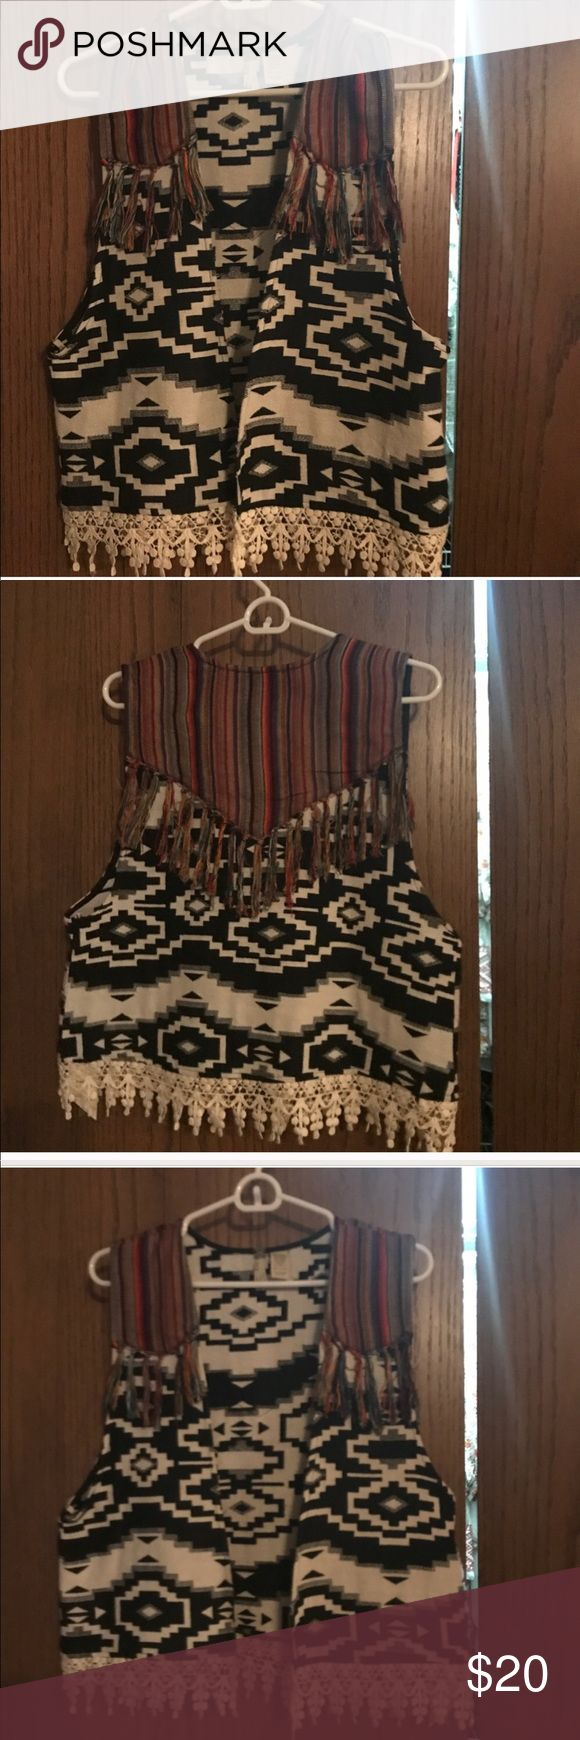 Gimmicks NEVER WORN Aztec vest! Gimmicks NEVER WORN Aztec vest! So beautiful. Just didn't fit my bust. Size Large. No tags but new condition. gimmicks Tops Blouses